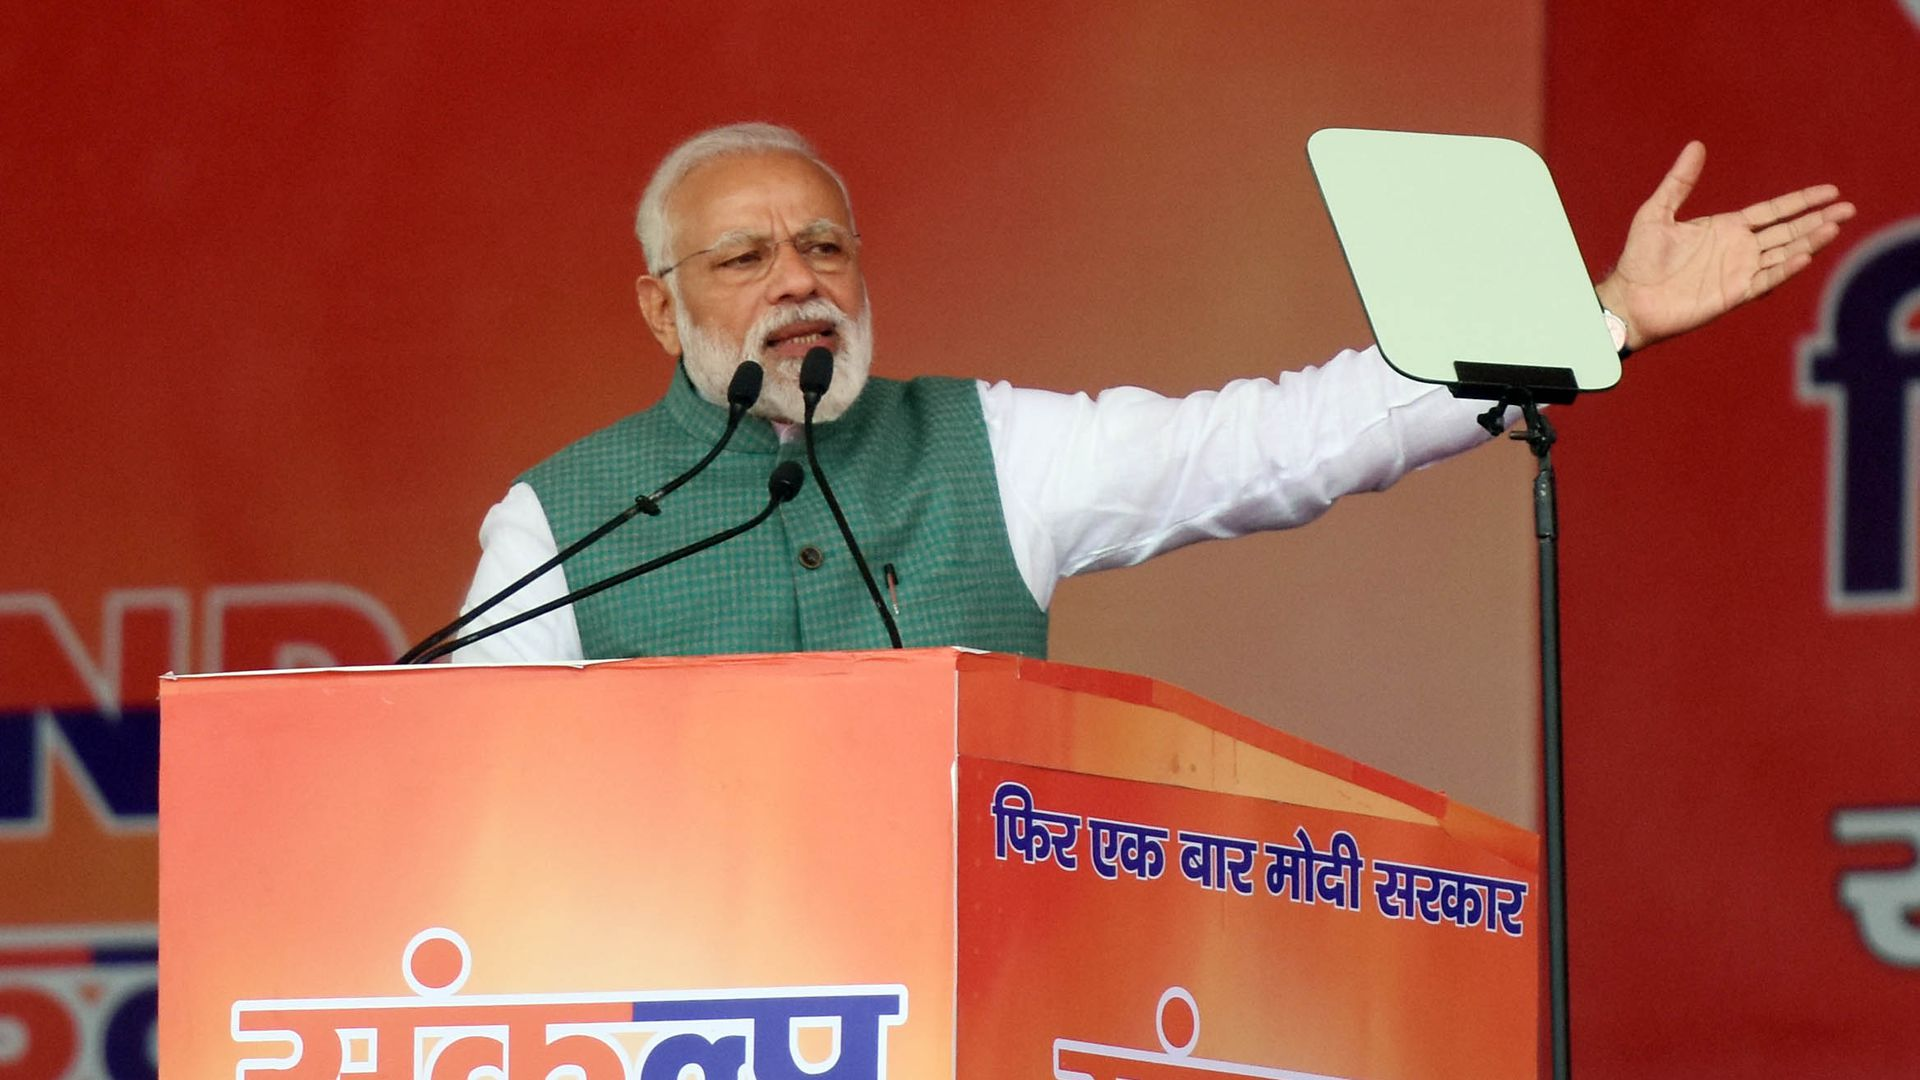 Prime Minister Narendra Modi addresses his supporters during Sankalp Rally at Gandhi Maidan on March 3, 2019 in Patna, India.